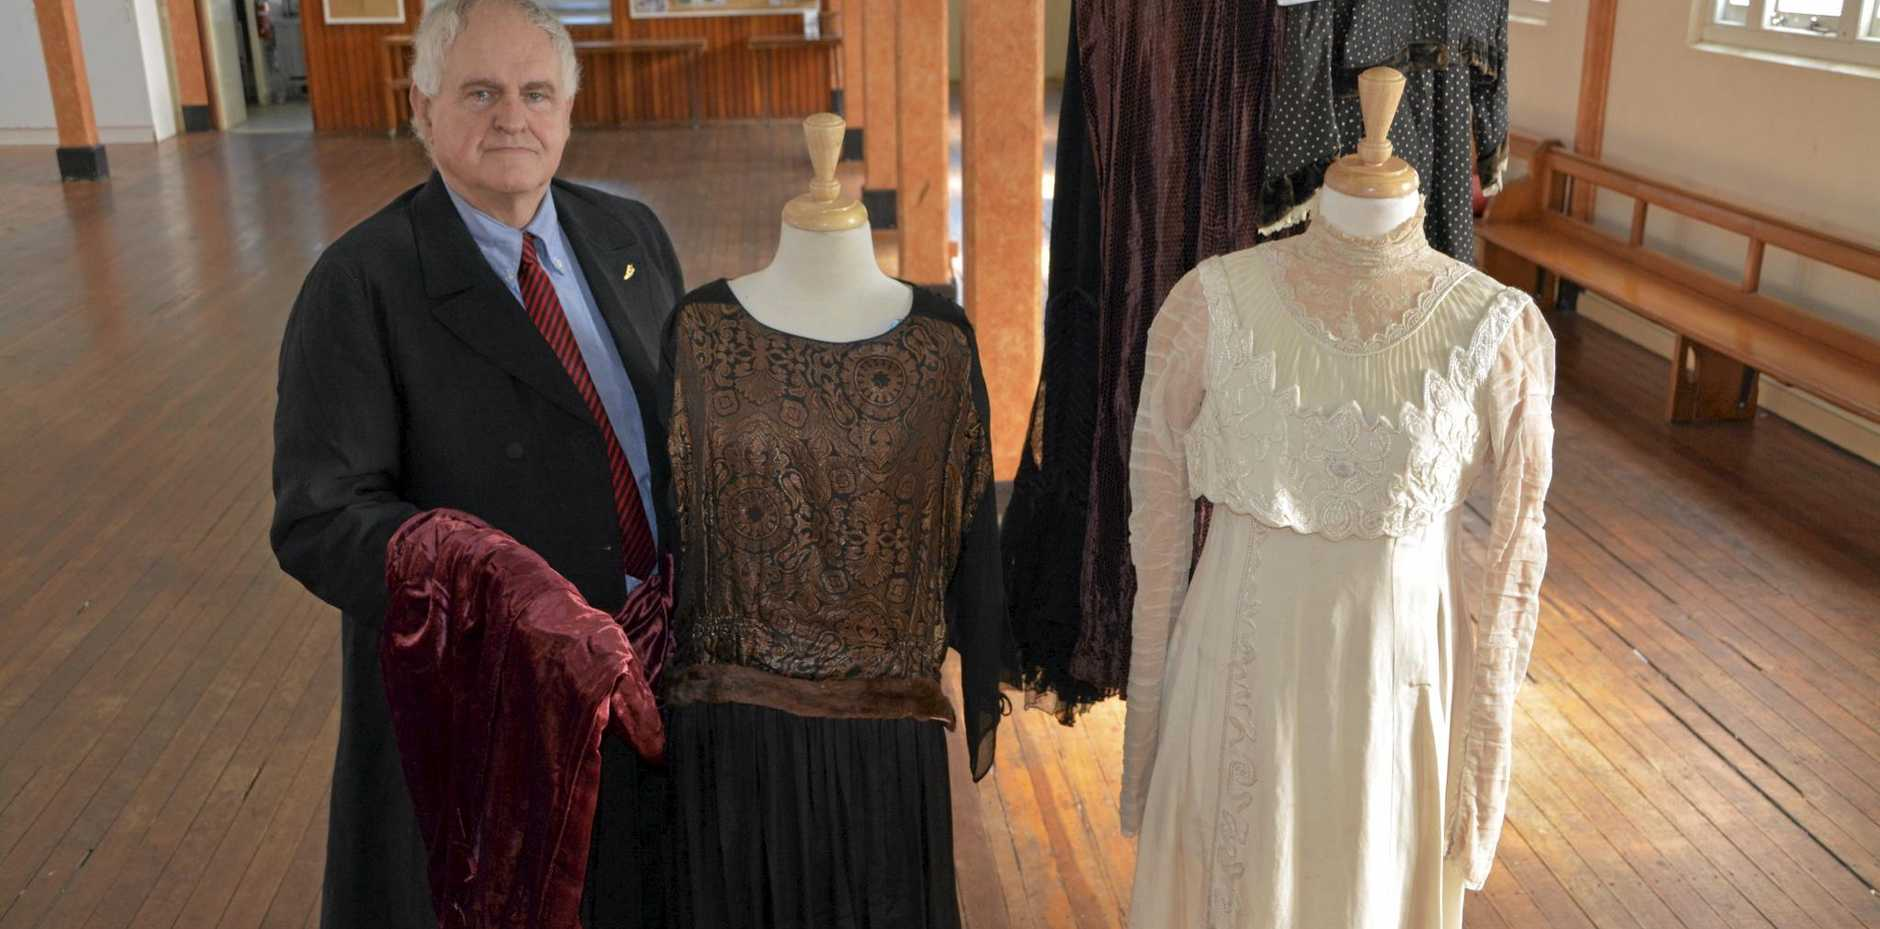 BARGAIN PRICES: Keith Baverstock is excited to be offering vintage fashion items to Toowoomba residents today.